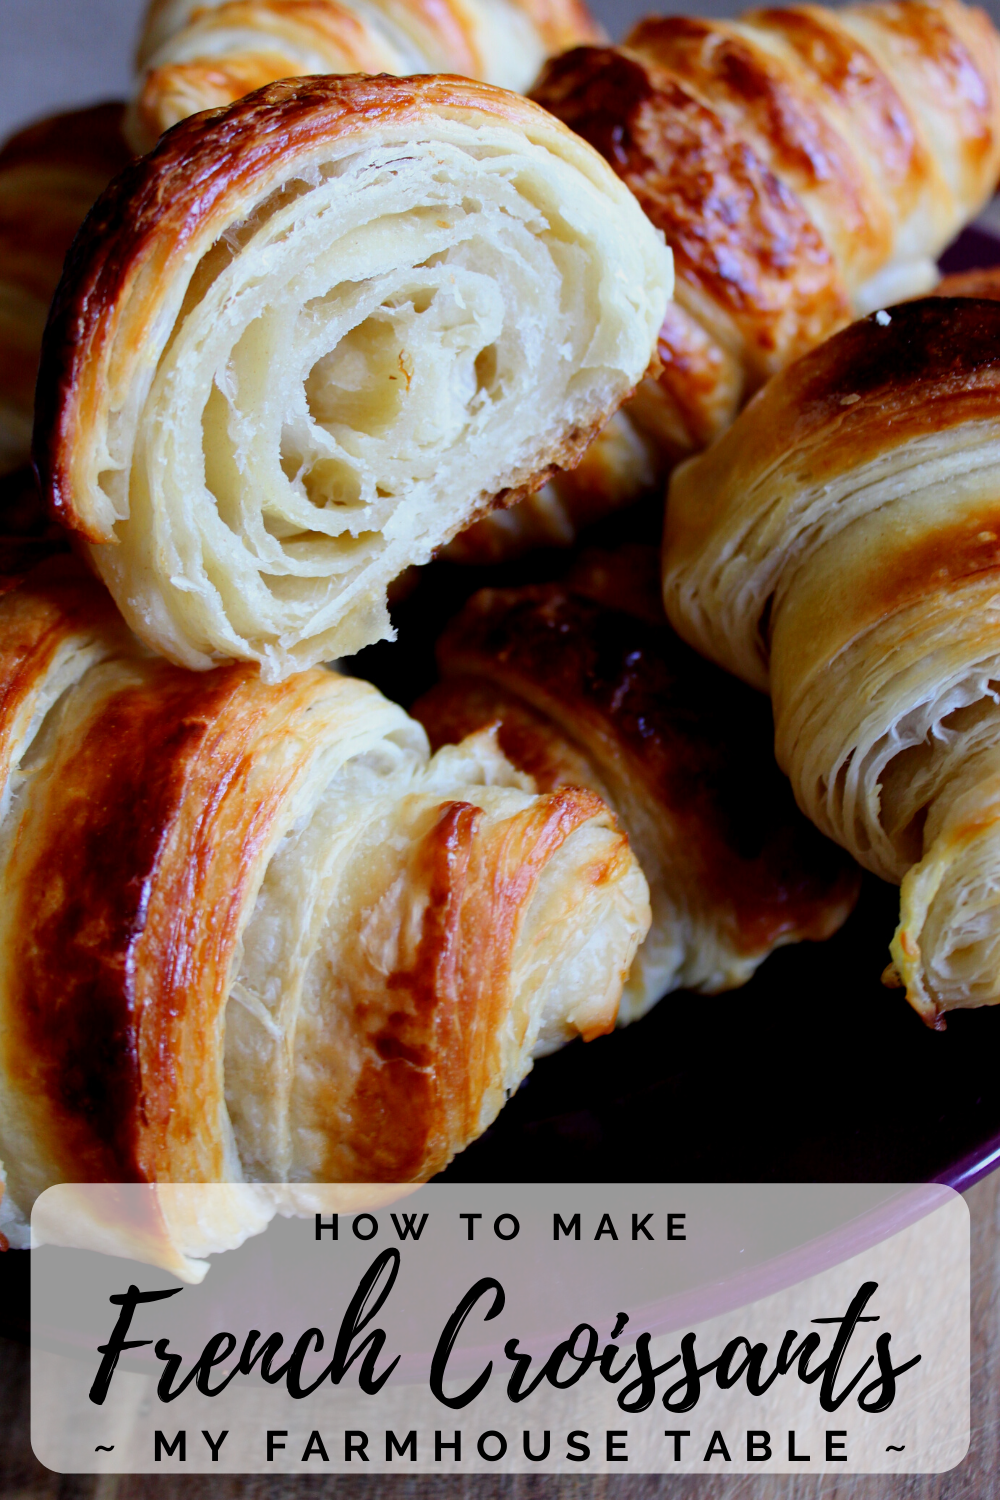 How to Make French Croissants Recipe with Step by Step Picture Instructions Easy Classic Recipe with Butter to create Flaky Layers Better Than Pillsbury Holiday Bread Recipe Thanksgiving Christmas Easter My Farmhouse Table